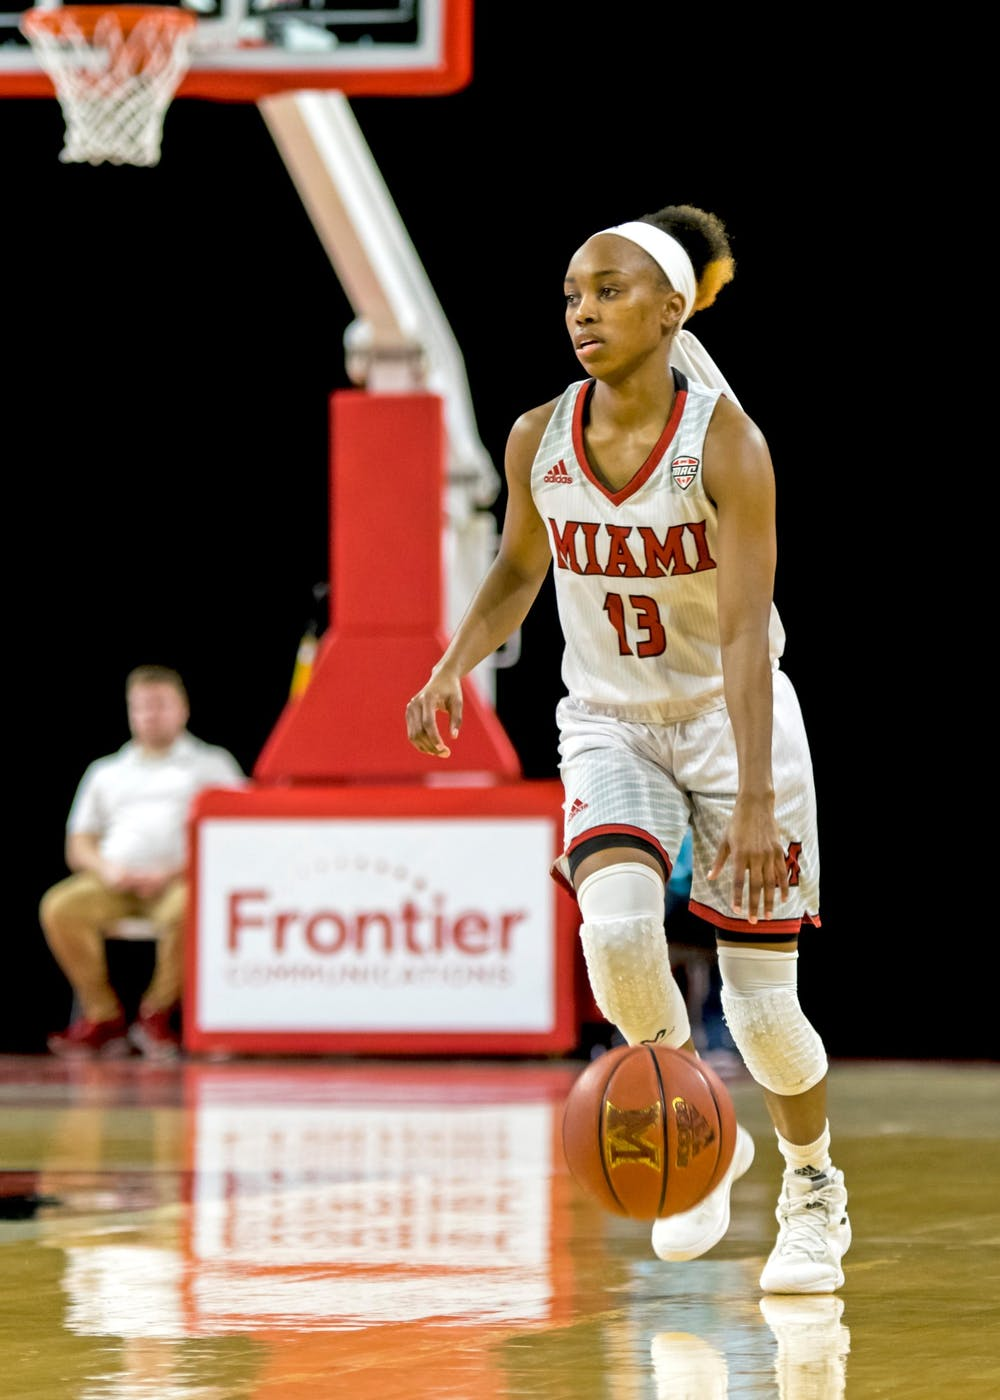 <p>Lauren Dickerson will start Wednesday, March 4, against Bowling Green. If she scores 14 points, she breaks Miami&#x27;s all-time scoring record.</p>